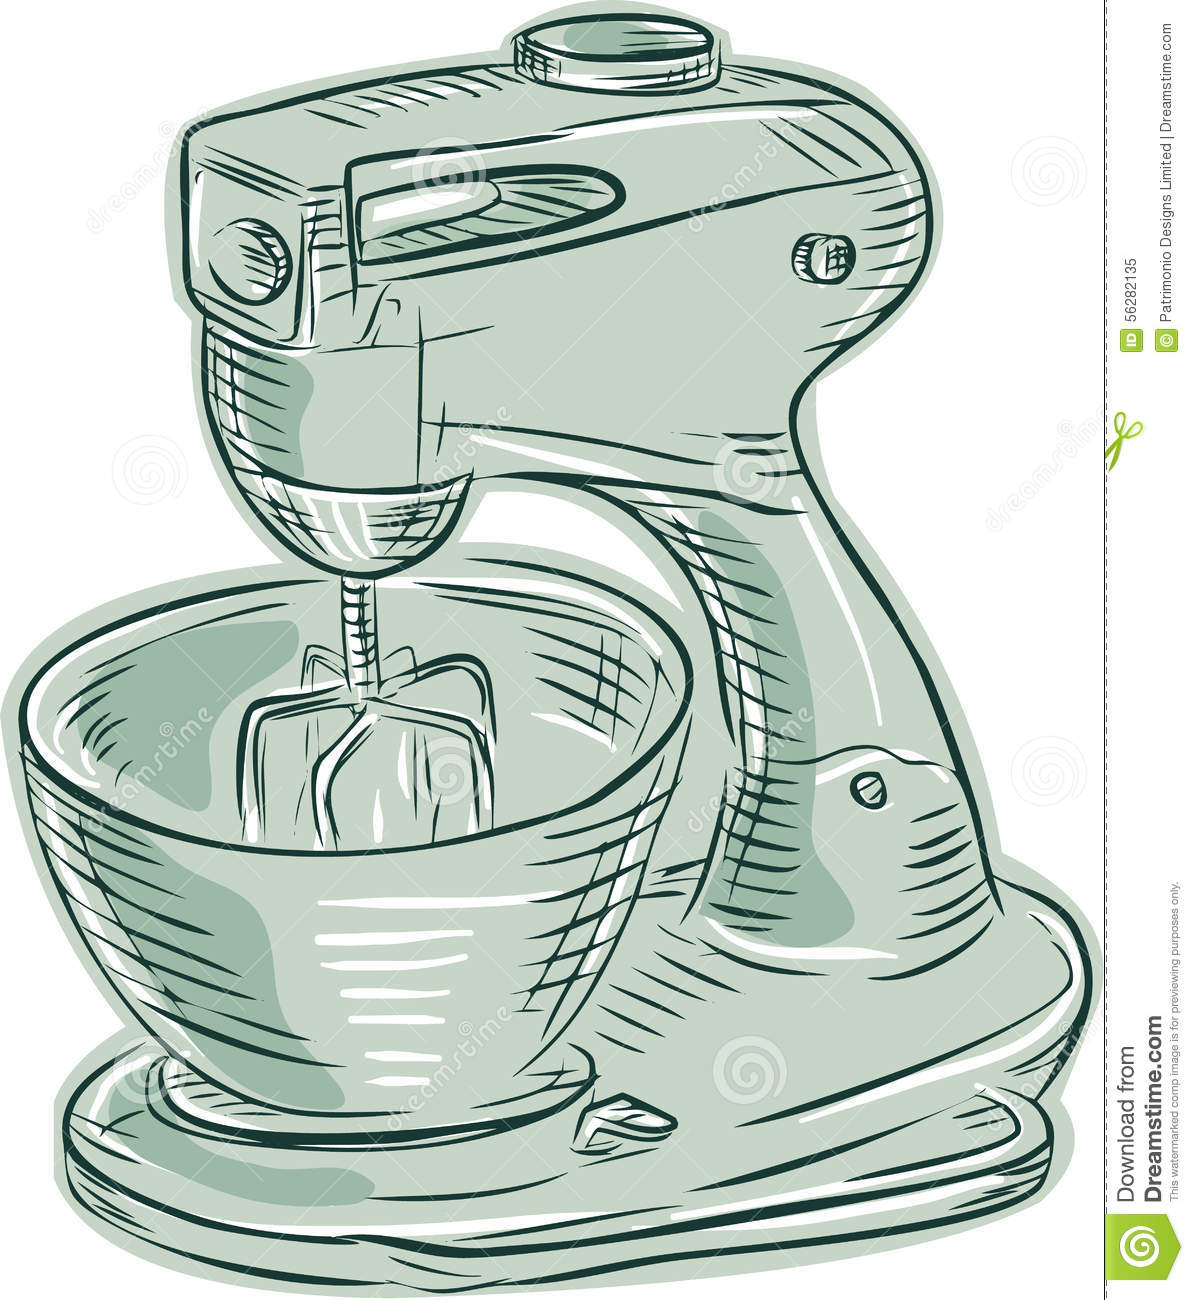 Cartoon Kitchen Mixer ~ Kitchen mixer vintage etching stock vector image